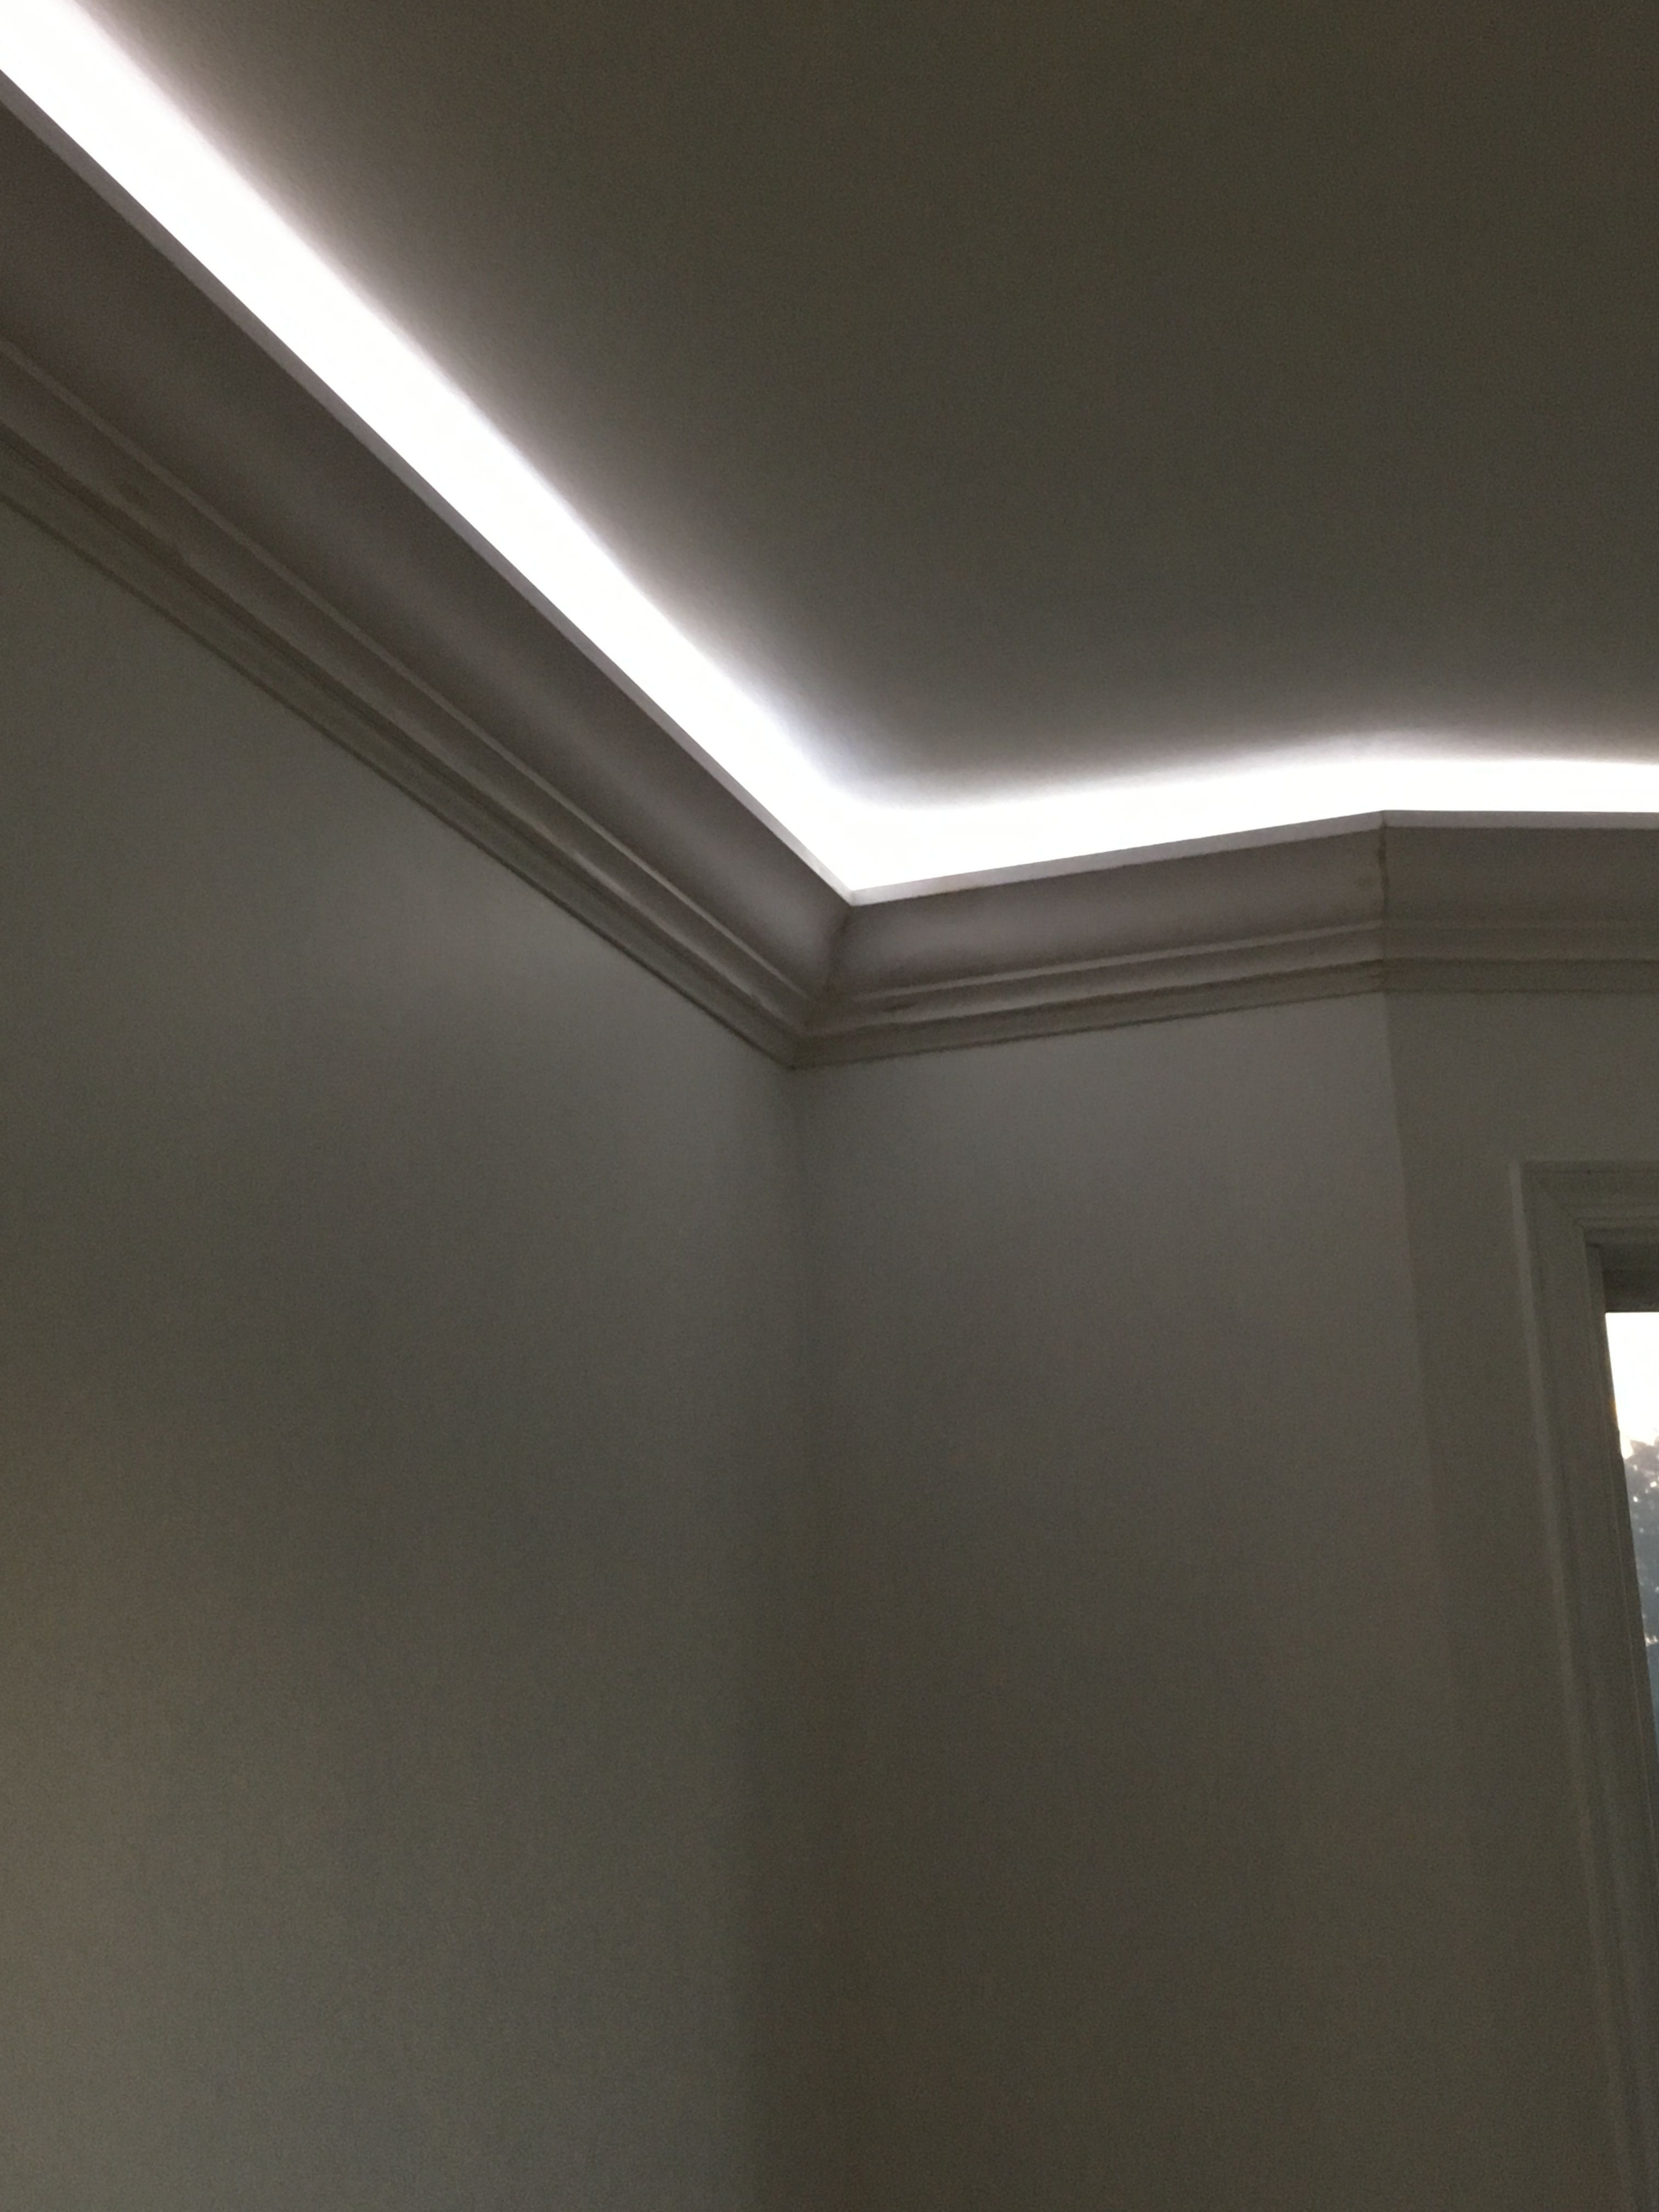 Rope Lighting Behind 5 Crown Molding Bedroom Ceiling